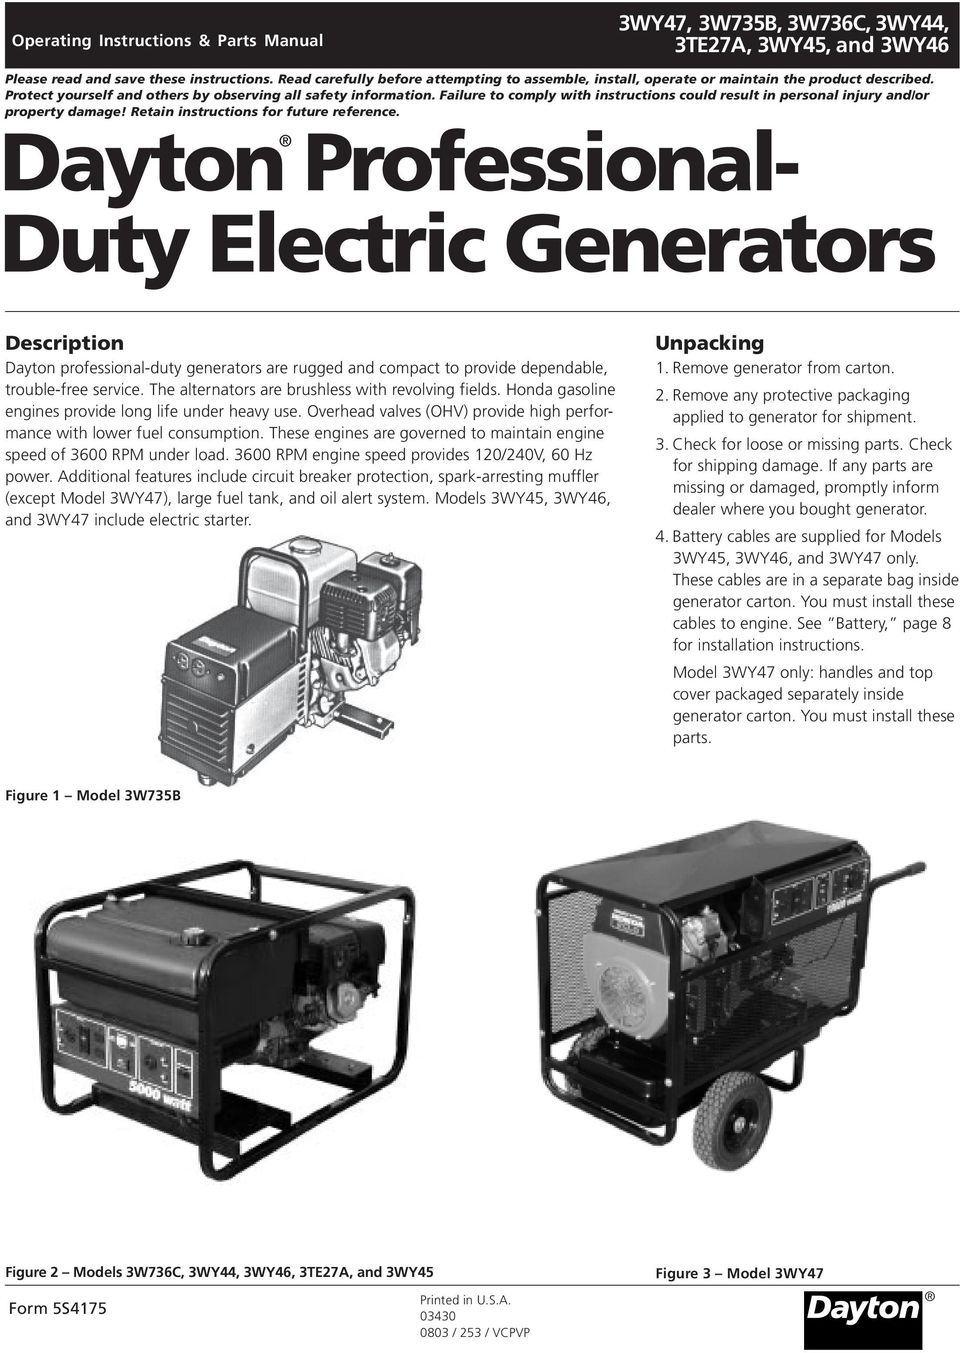 Dayton Professional Duty Electric Generators Pdf Battery Charger Wiring Diagram Failure To Comply With Instructions Could Result In Personal Injury And Or Property Damage